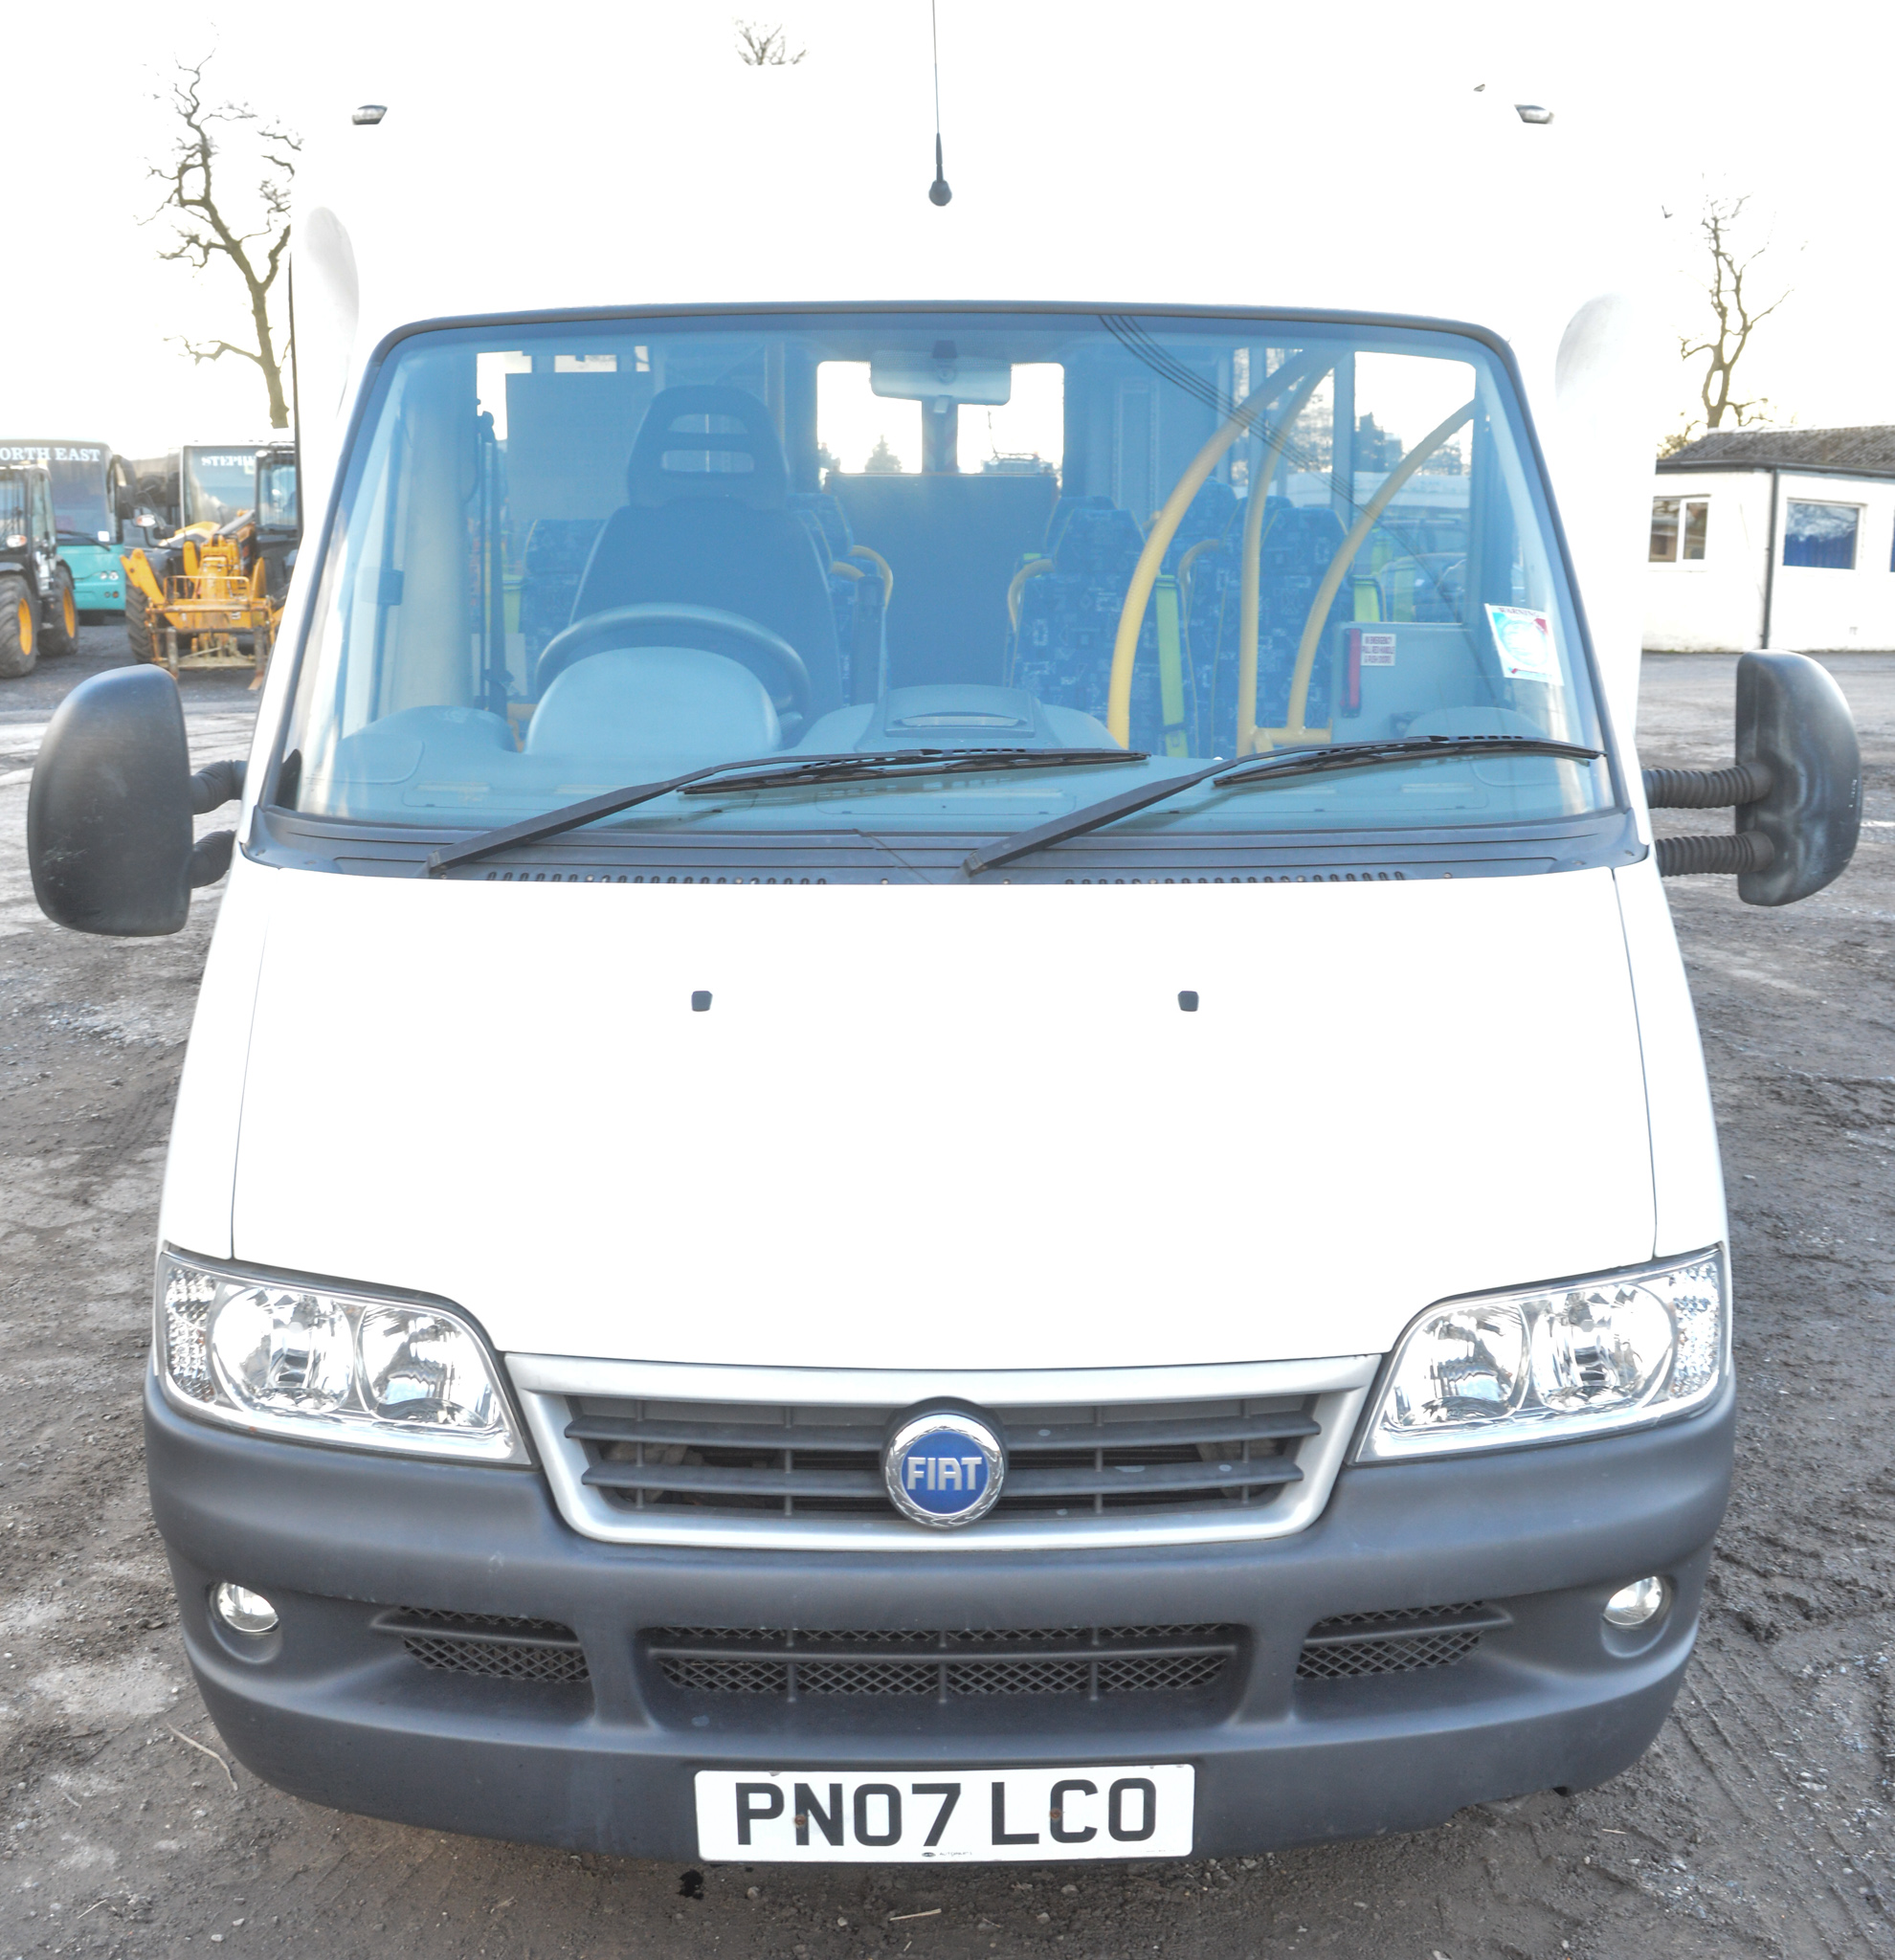 Lot 57 - Fiat Ducato 14 seat minibus  Registration Number: PN07 LCO Date of Registration: 01/07 MOT: Expired